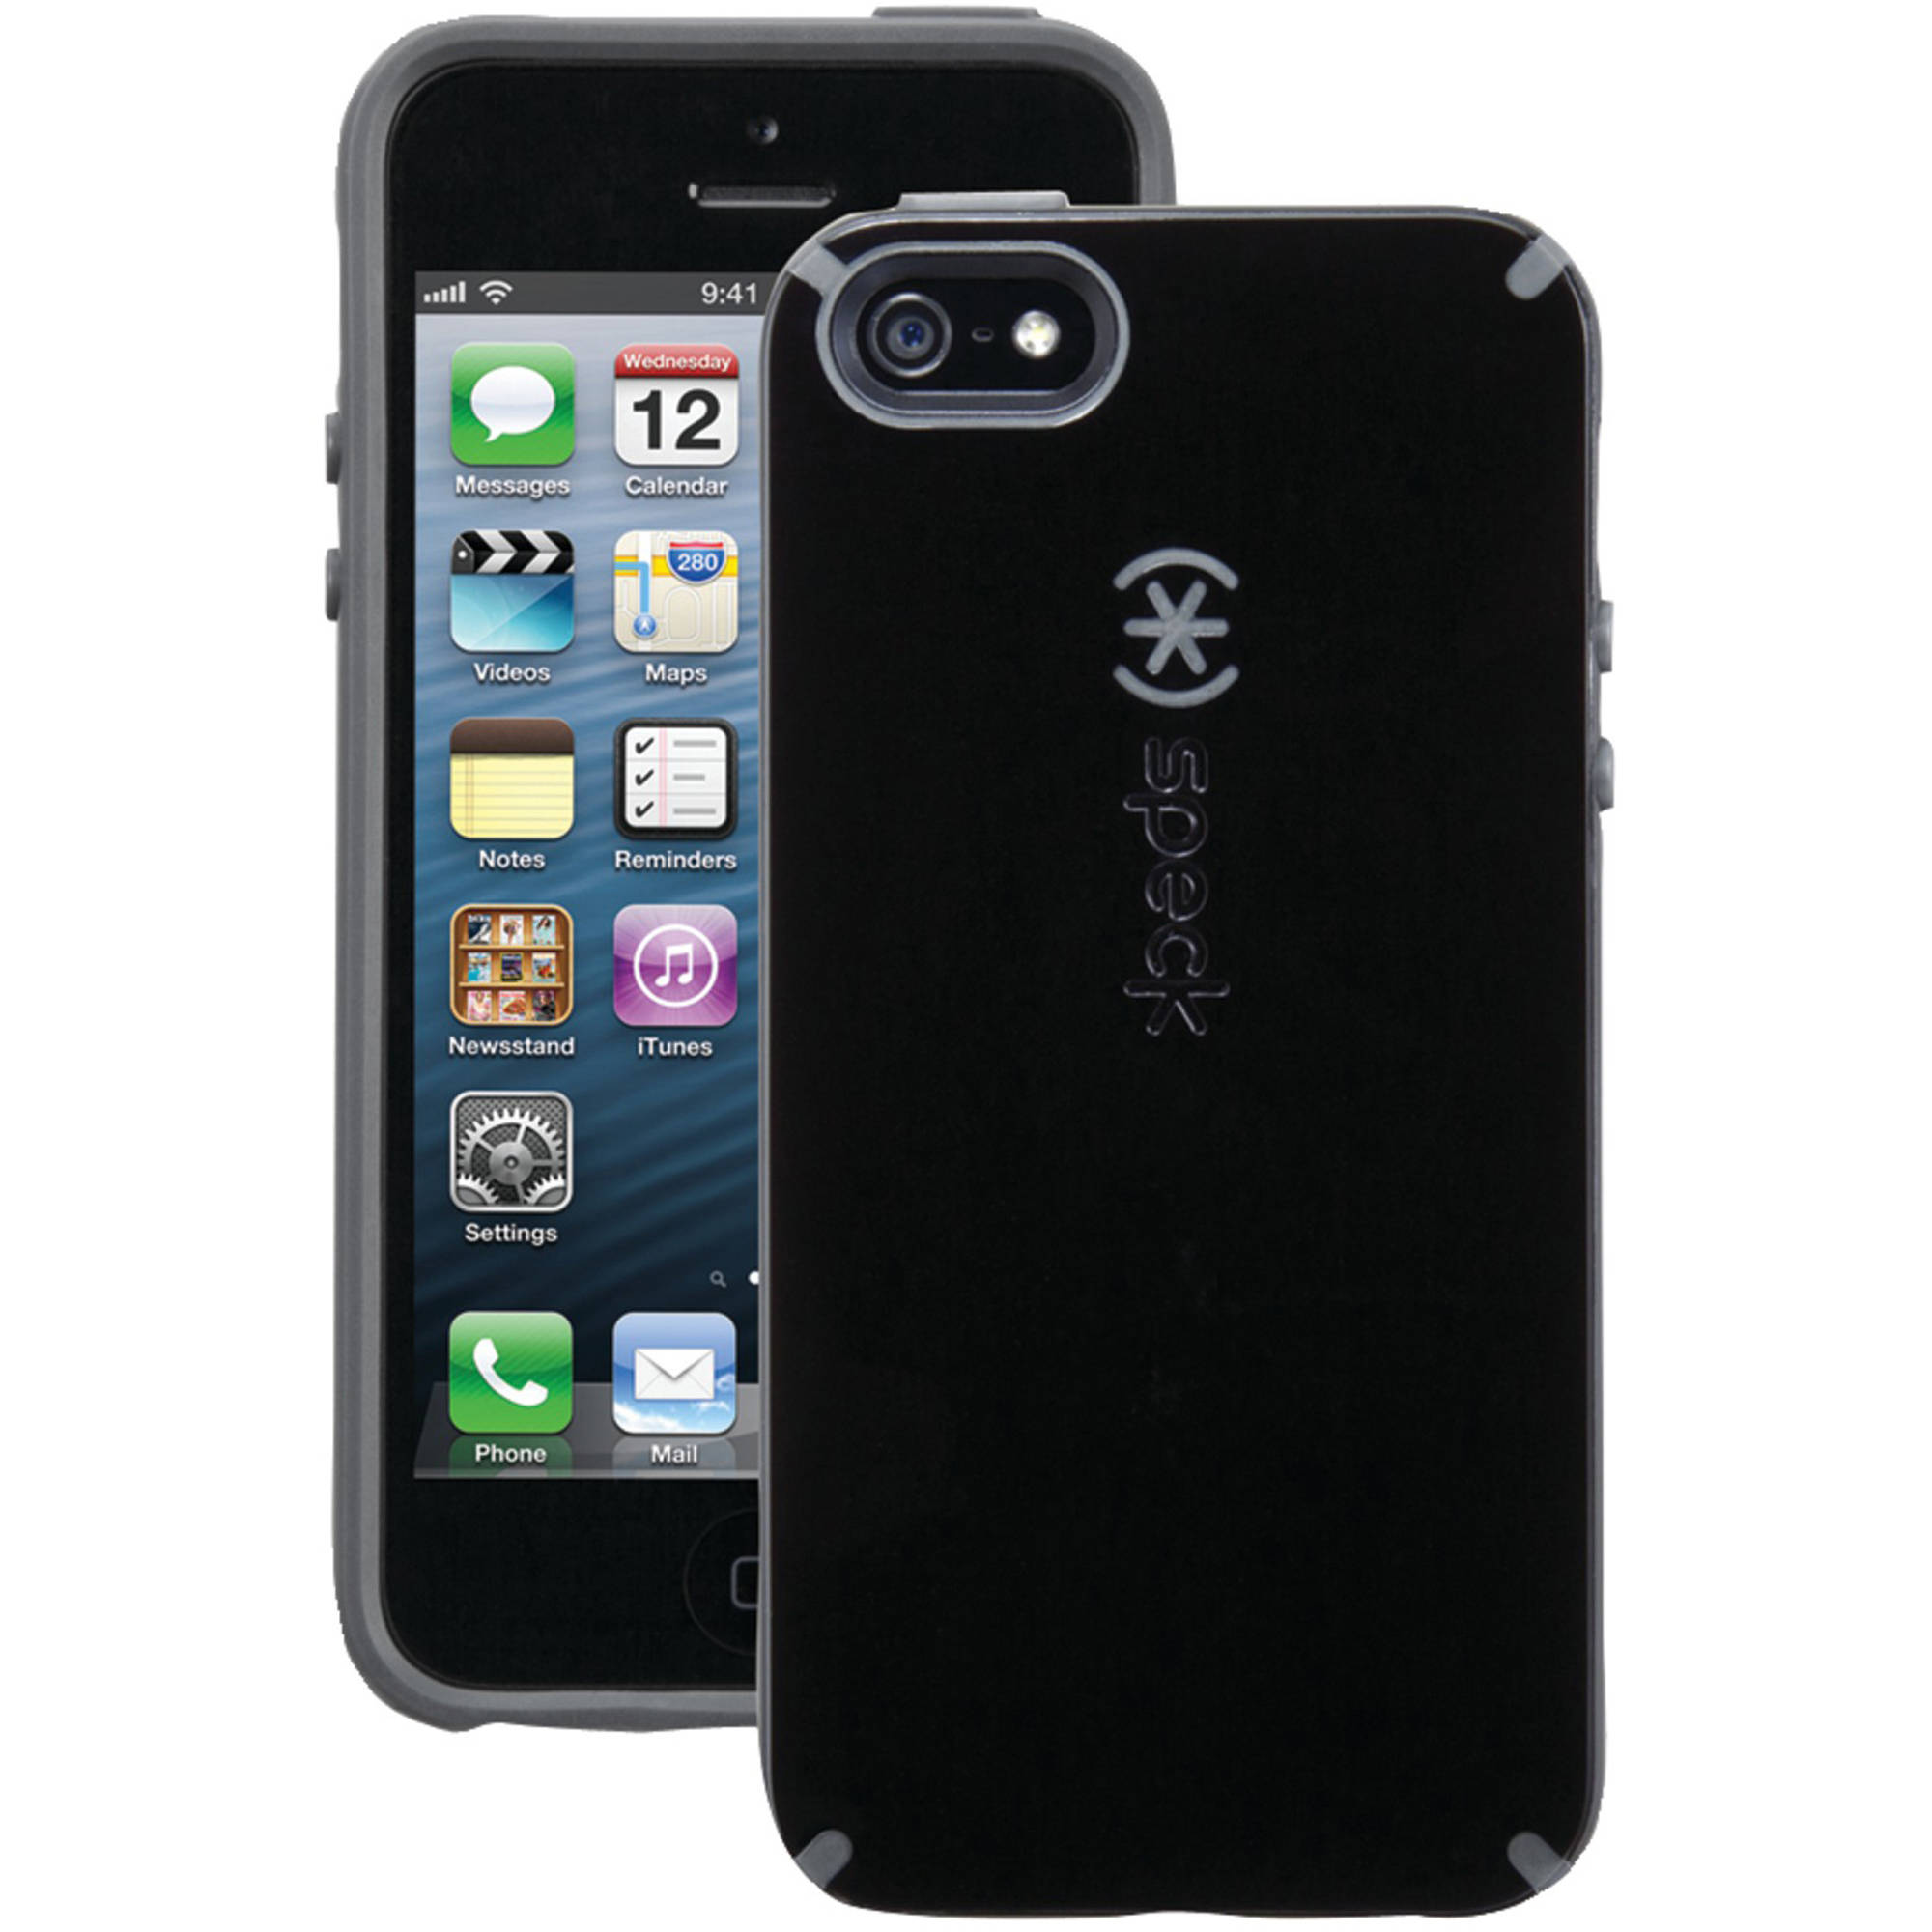 iphone 5 at walmart speck candyshell rubberized shell for iphone 5 14471